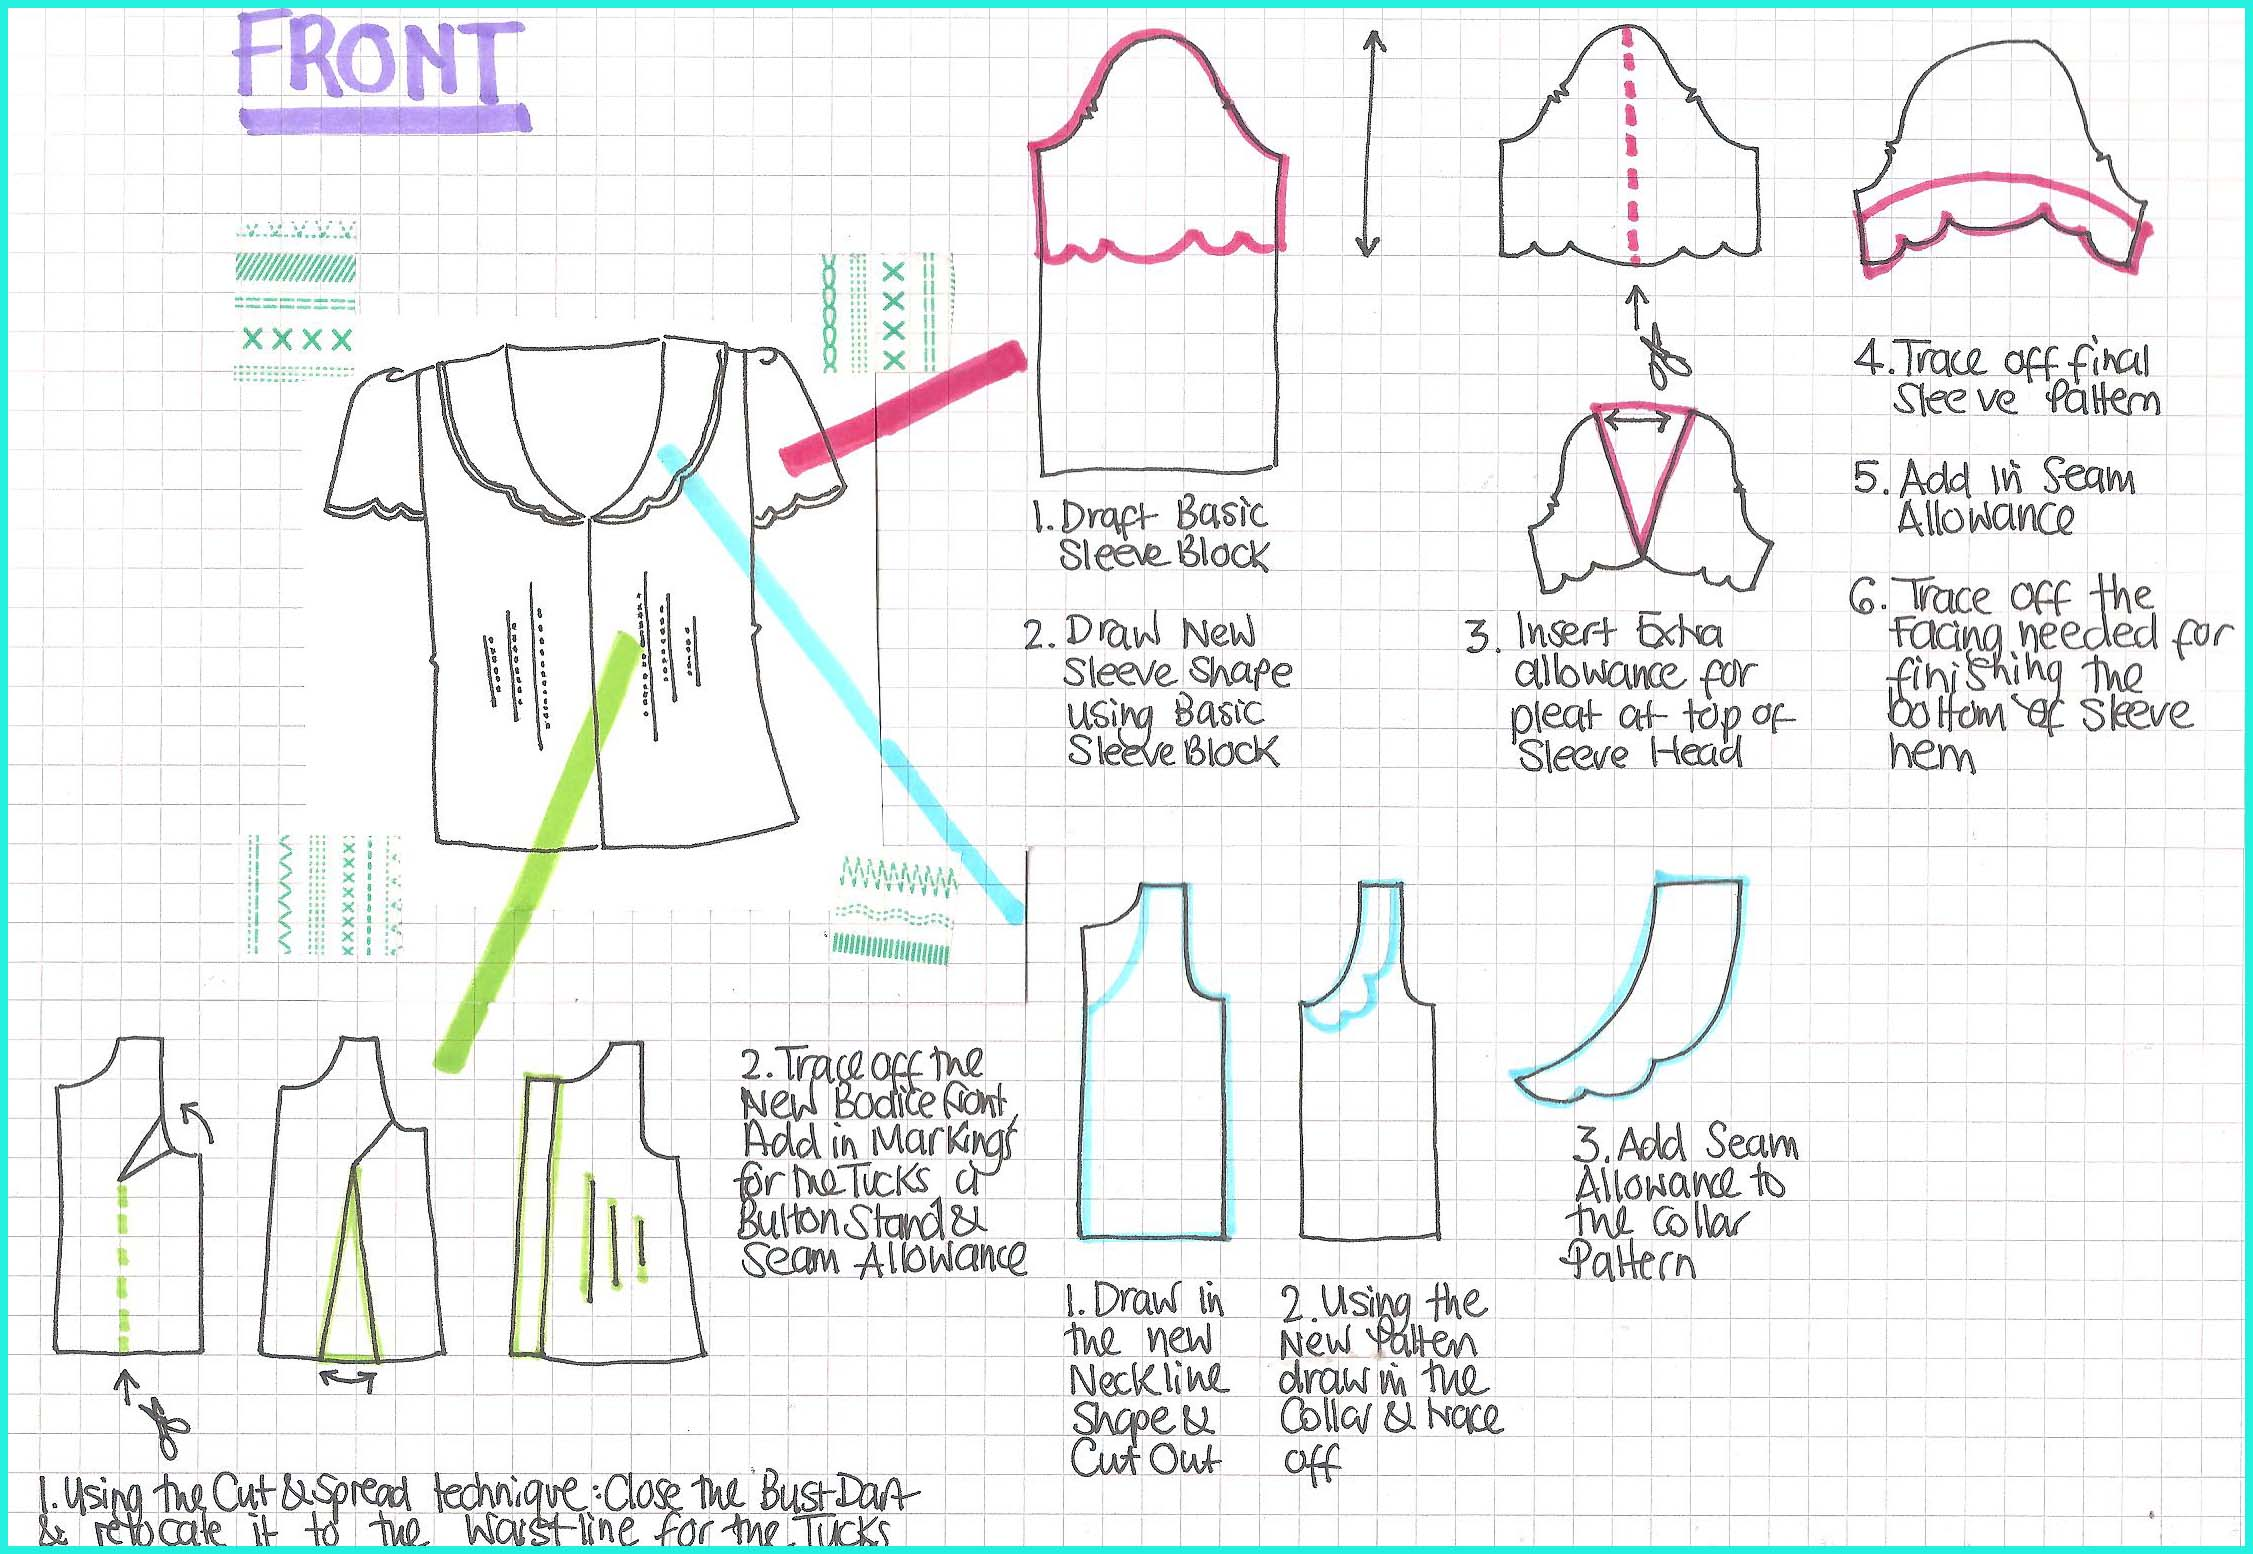 What Is Pattern Awesome Inspiration Design